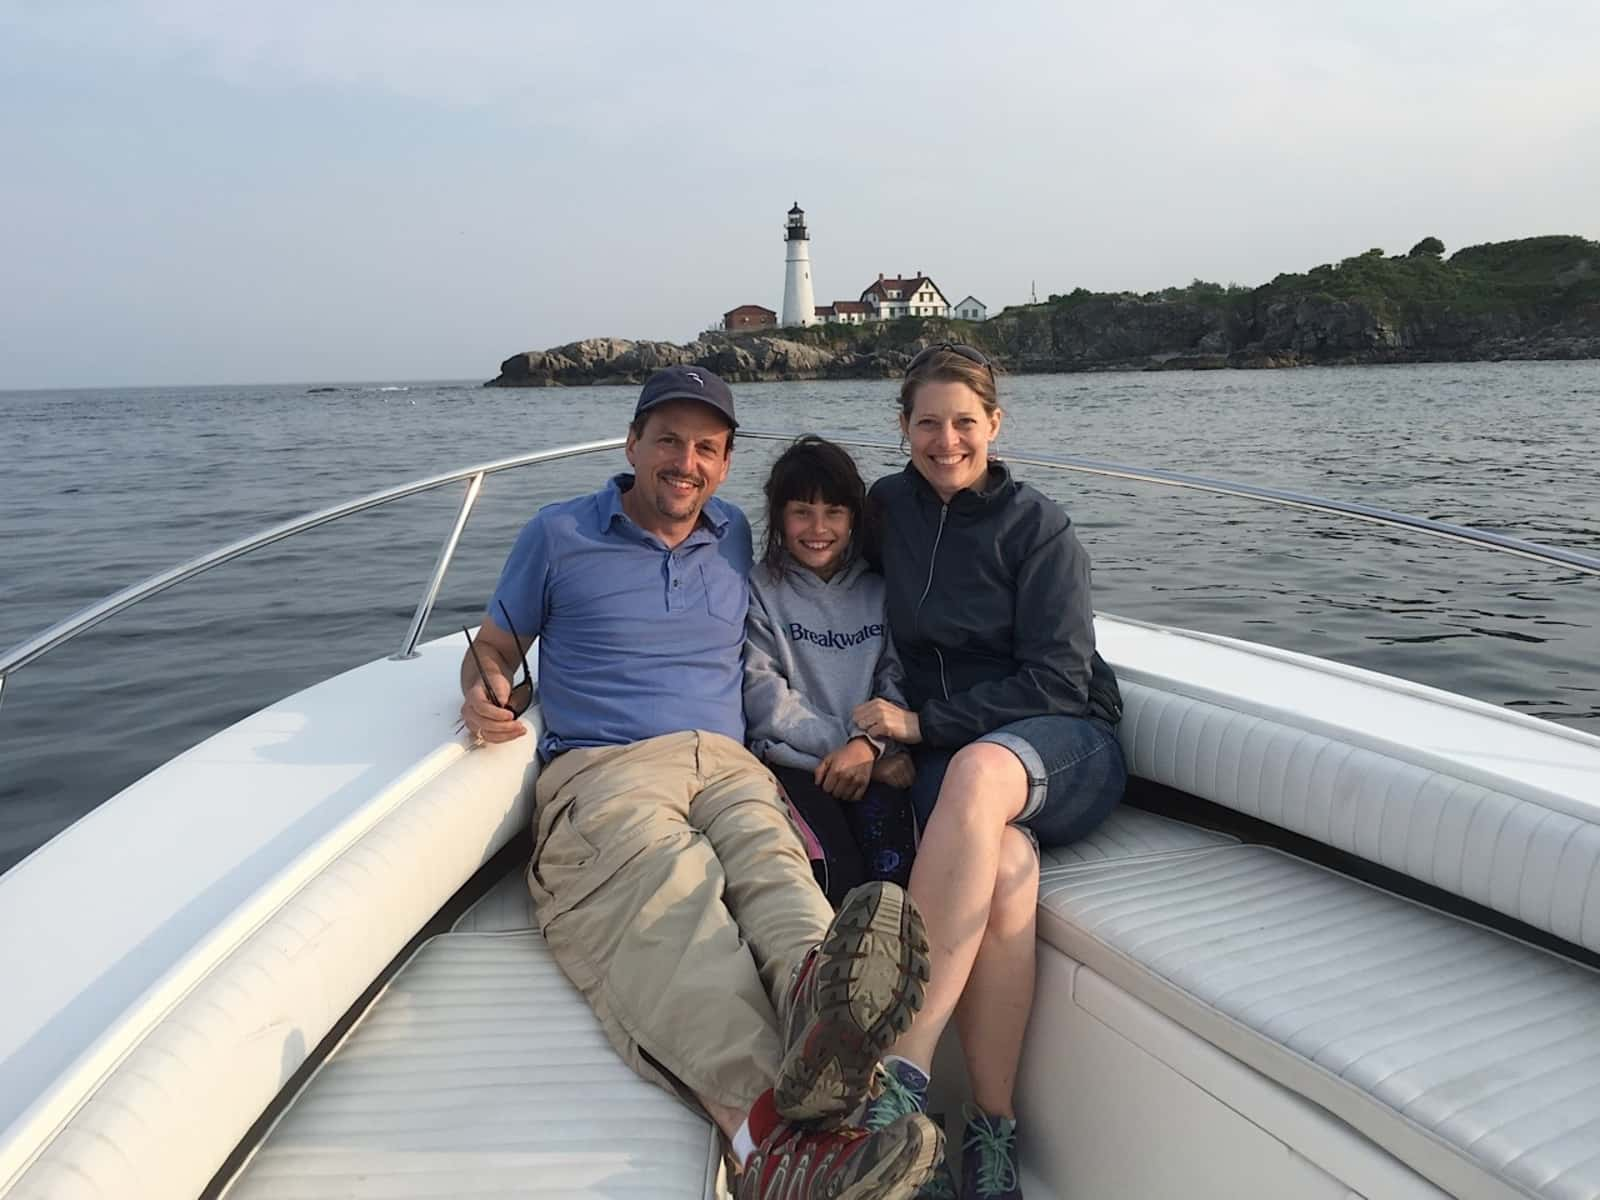 Amy & William from Portland, Maine, United States